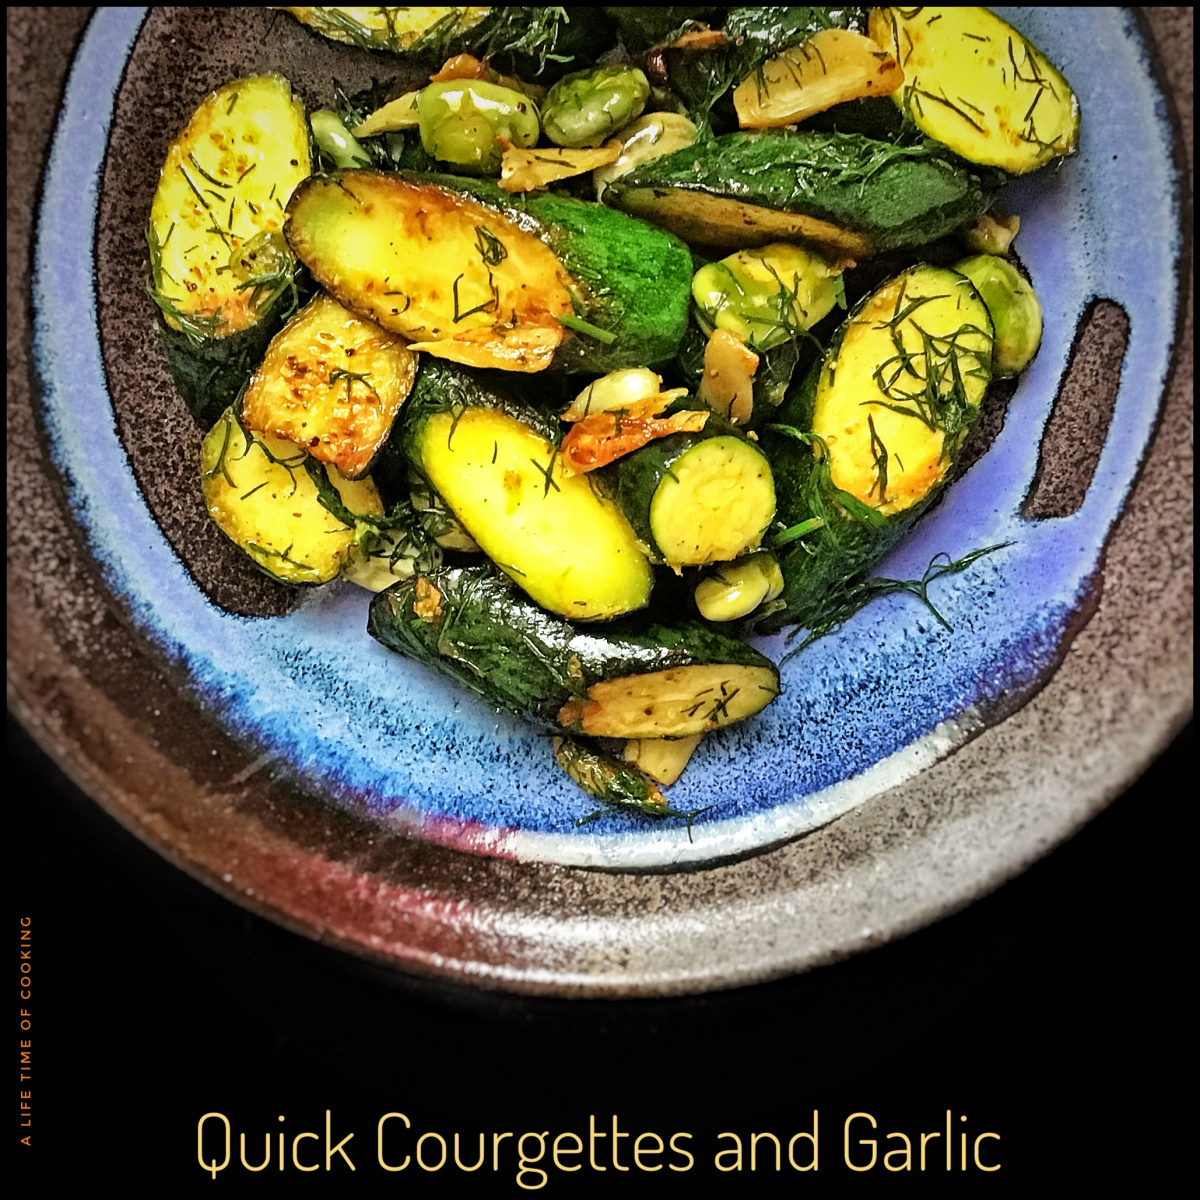 Quick Courgettes and Garlic